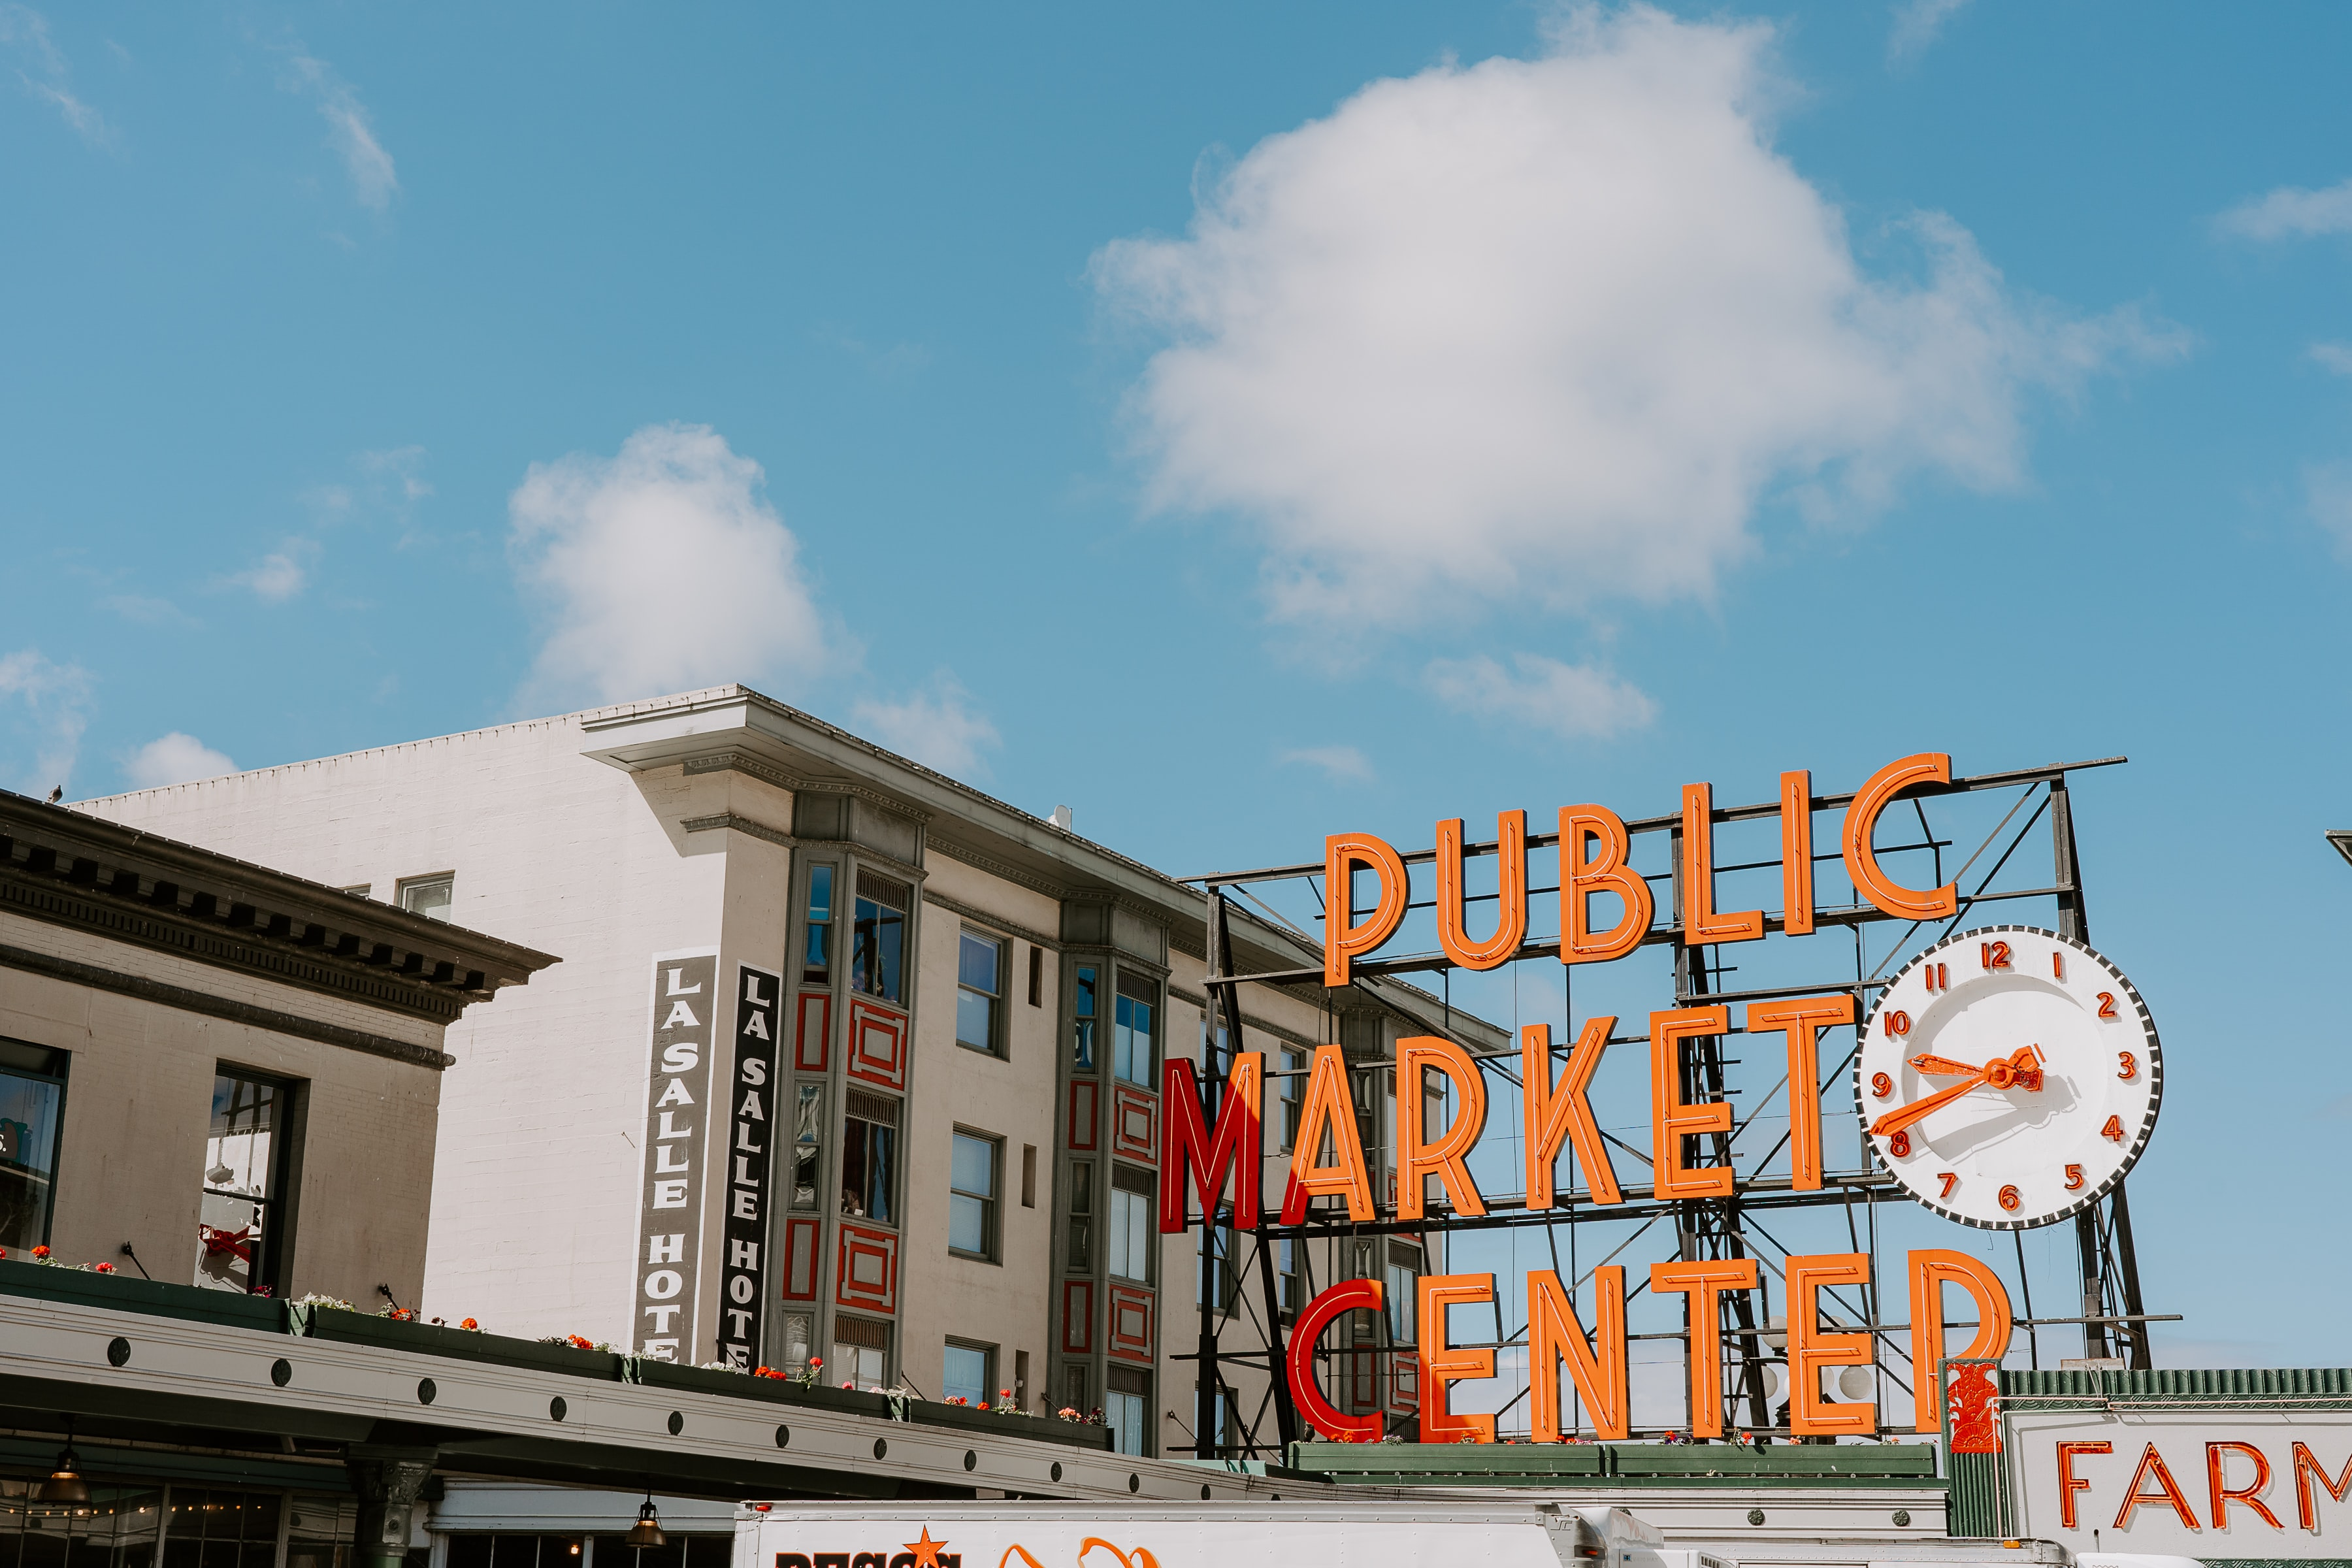 public market center neon light near white painted building